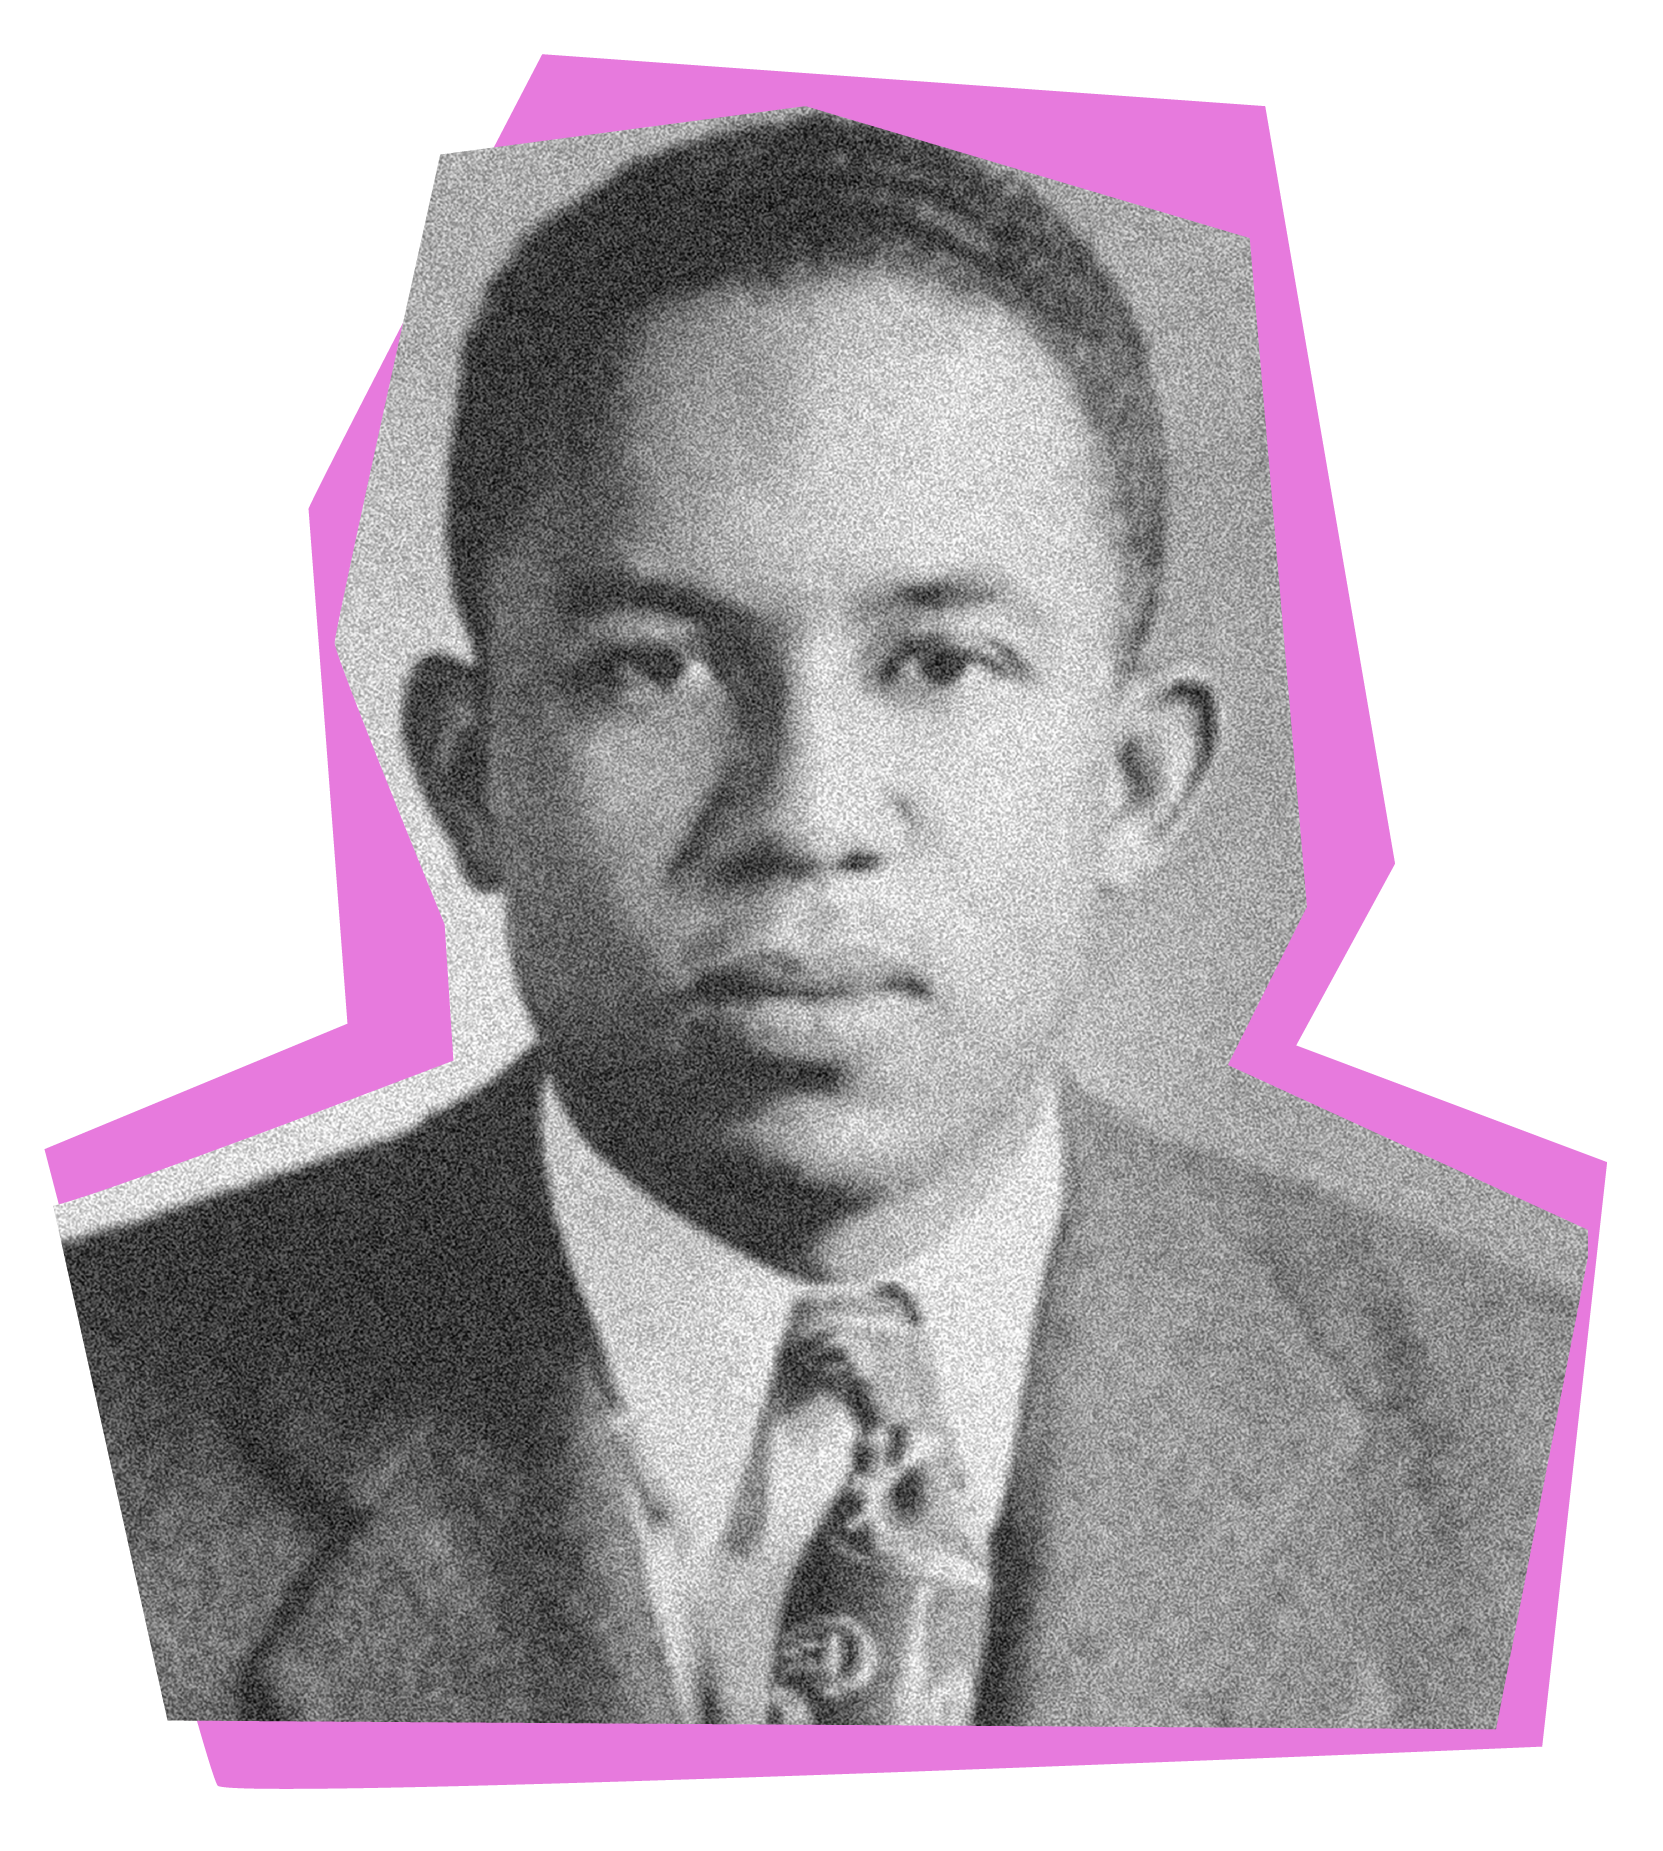 John Leroy Howard '47, Princeton's first Black student with an undergraduate degree, in the 1940s.